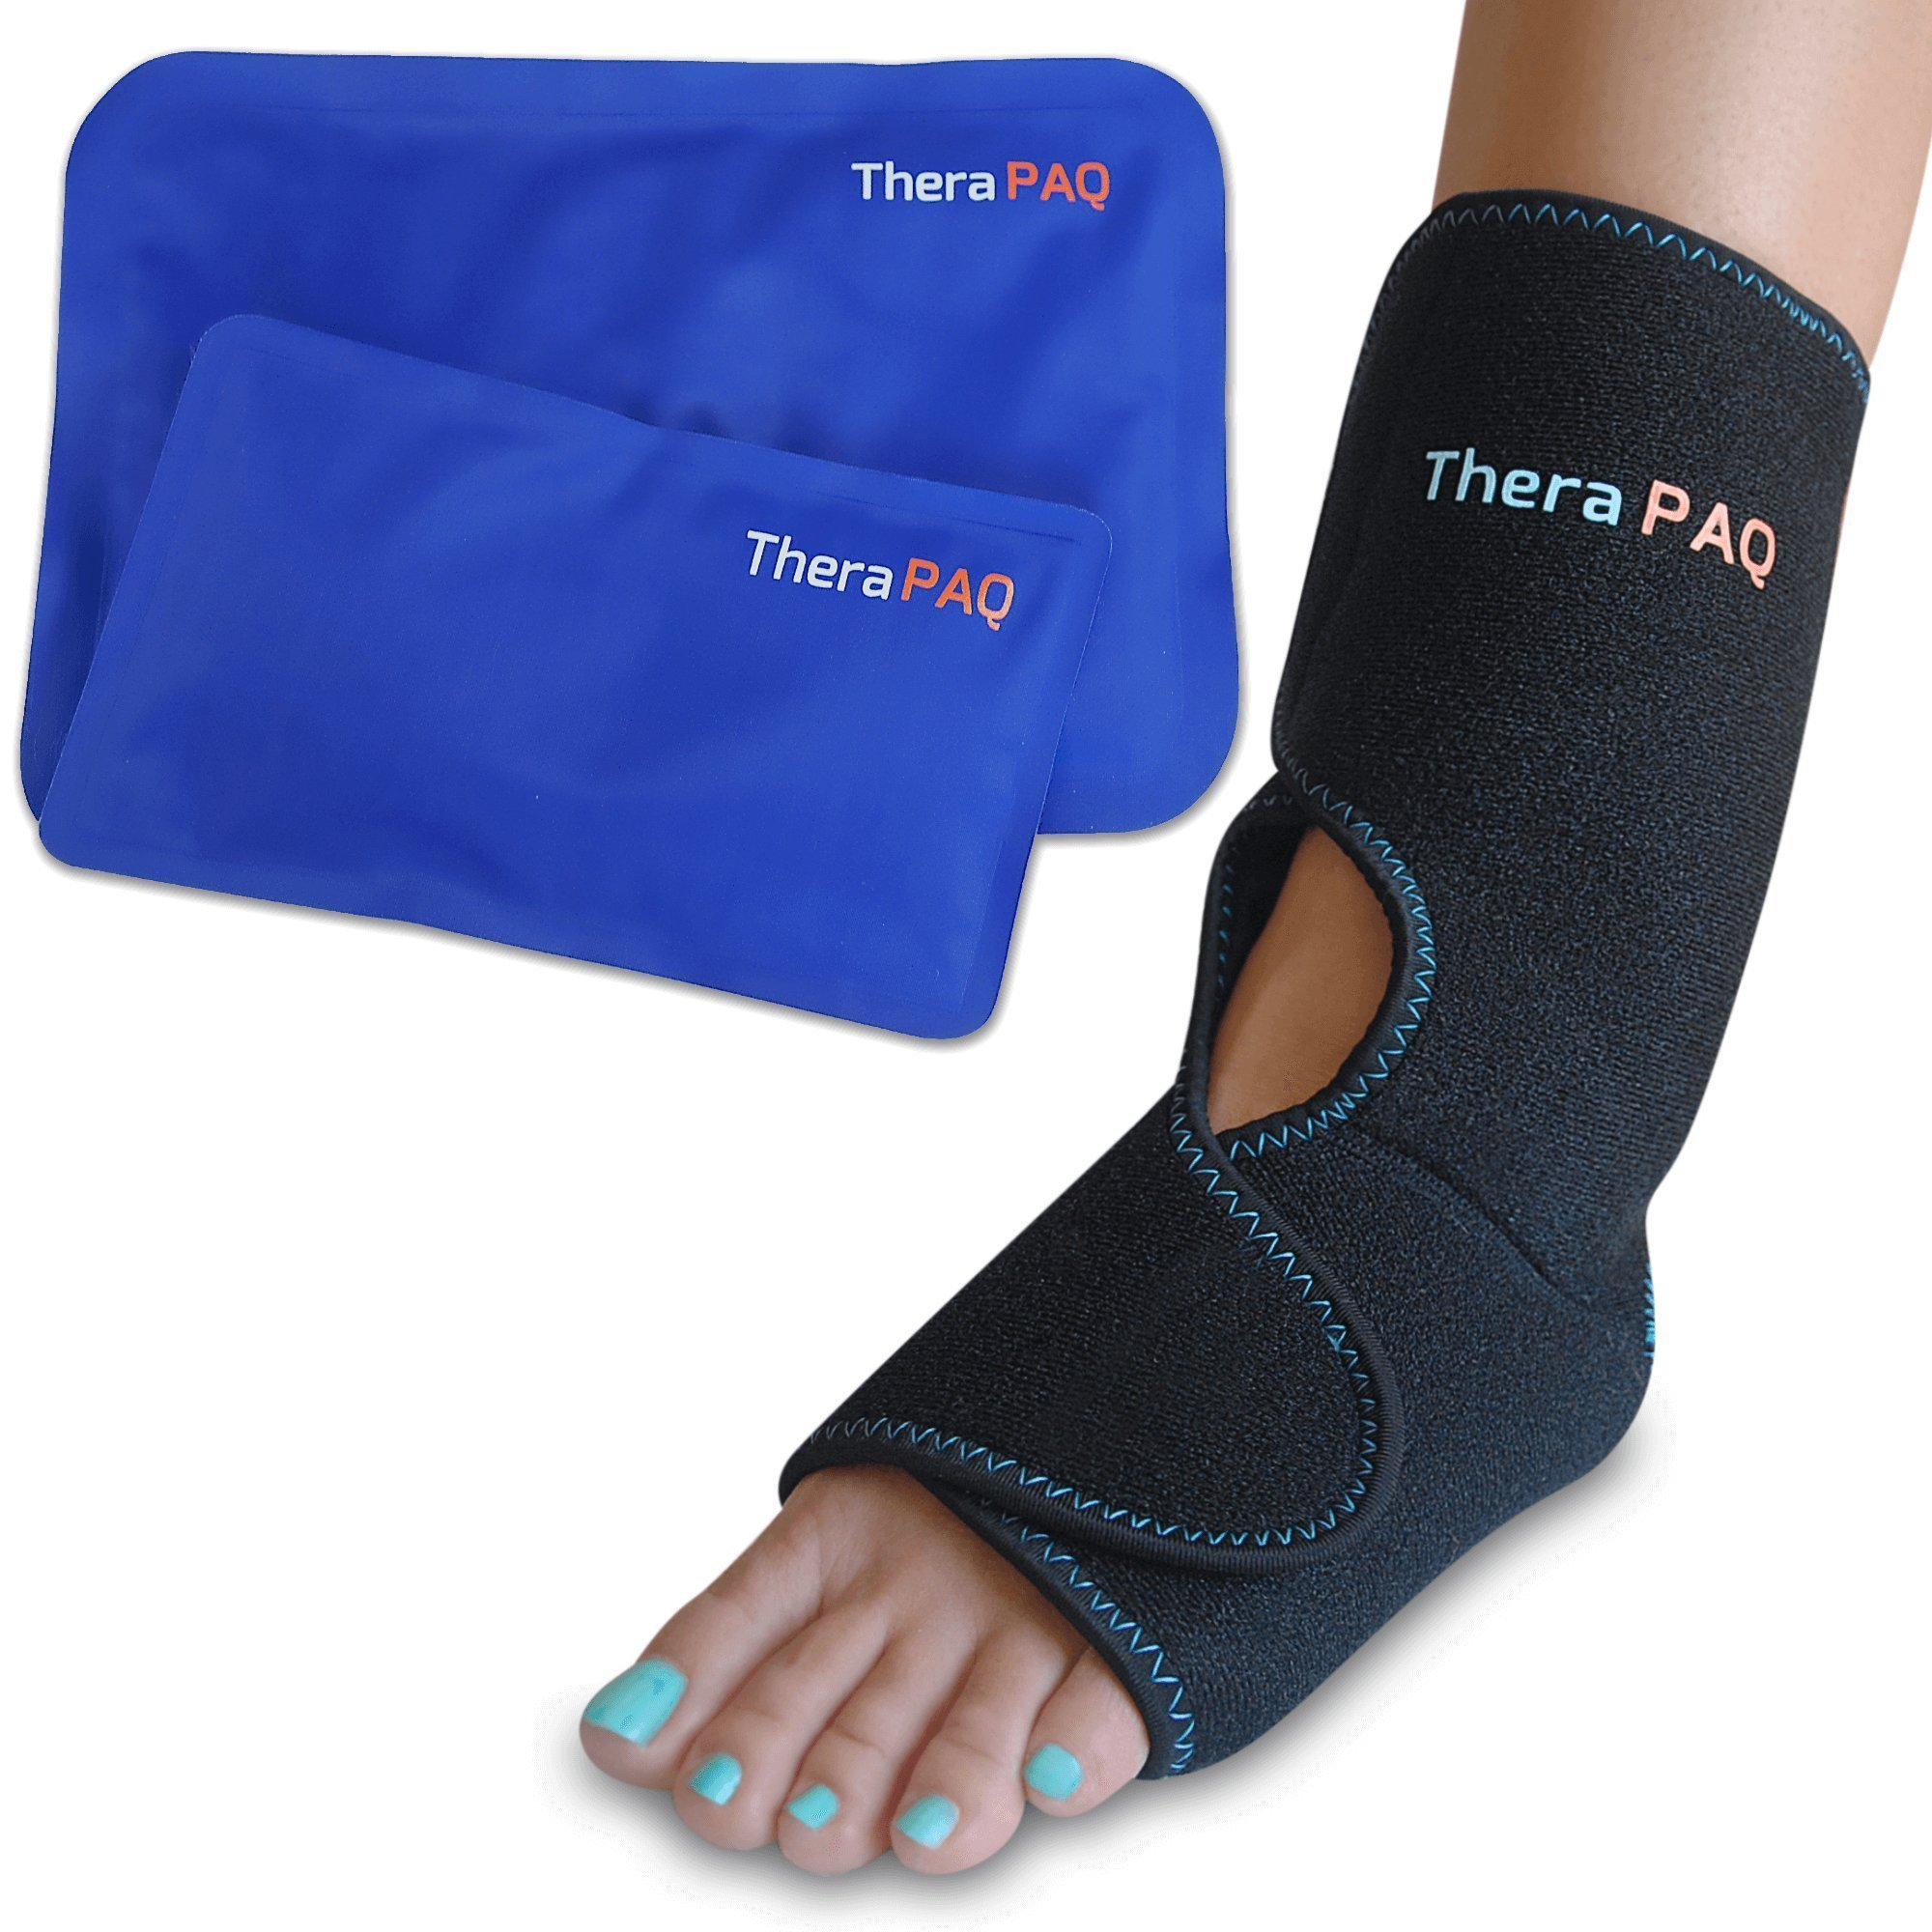 Foot & Ankle Pain Relief Ice Wrap with 2 Hot/Cold Gel Packs by TheraPAQ | Best for Achilles Tendon Injuries, Plantar Fasciitis, Bursitis & Sore Feet | Microwaveable, Freezable and Reusable (XS-XL) by TheraPAQ